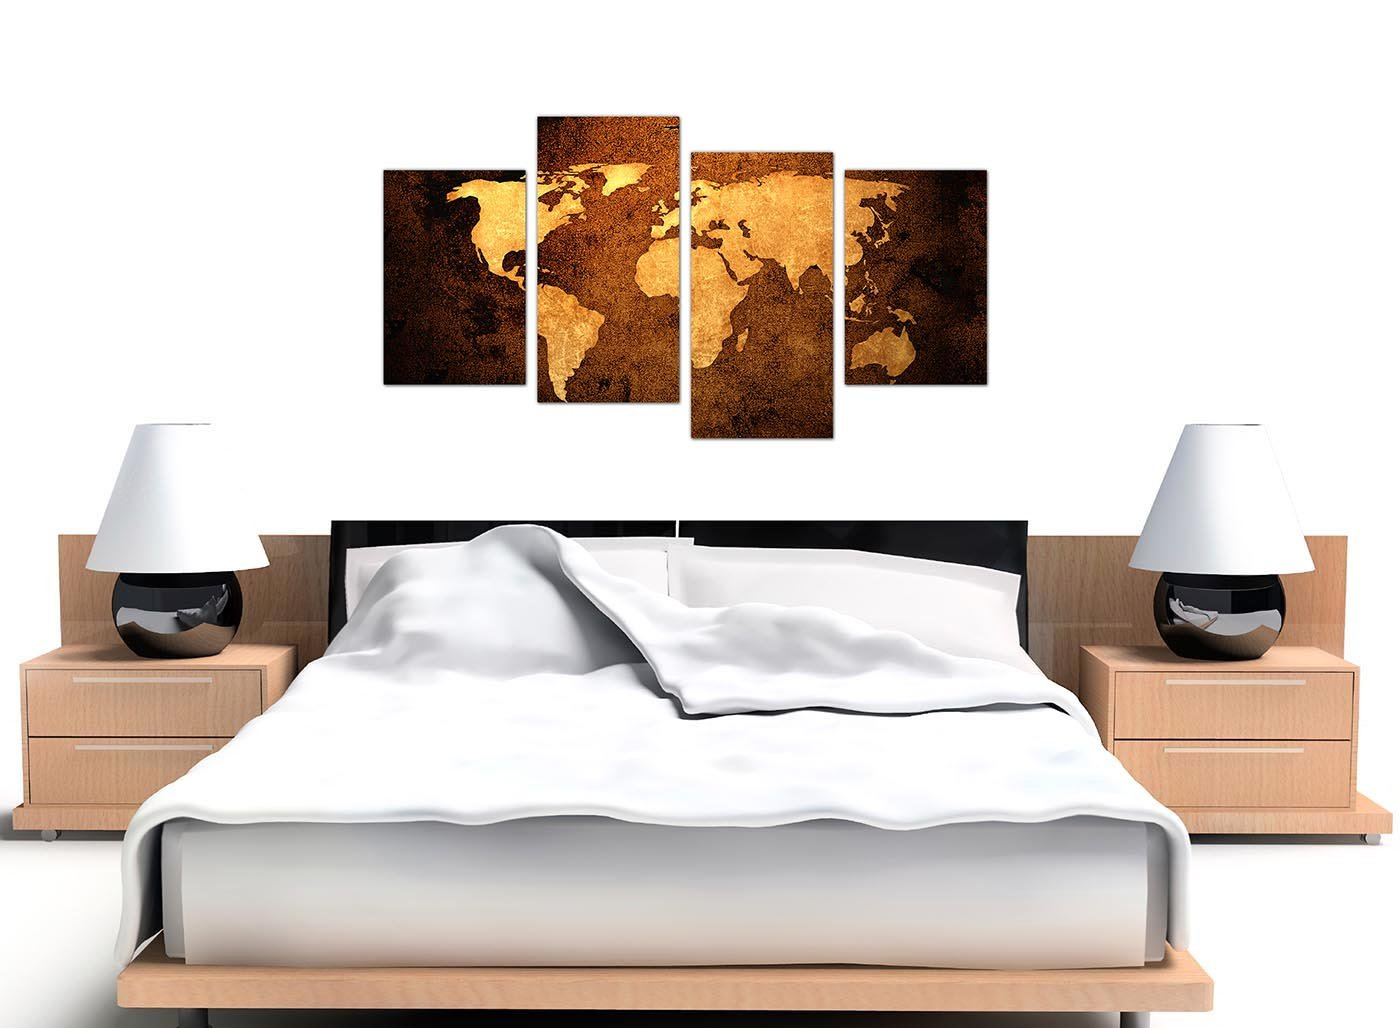 Wallfillers canvas pictures of a world map in brown and tan for your wallfillers canvas pictures of a world map in brown and tan for your bedroom large vintage wall art 4188 amazon kitchen home freerunsca Images